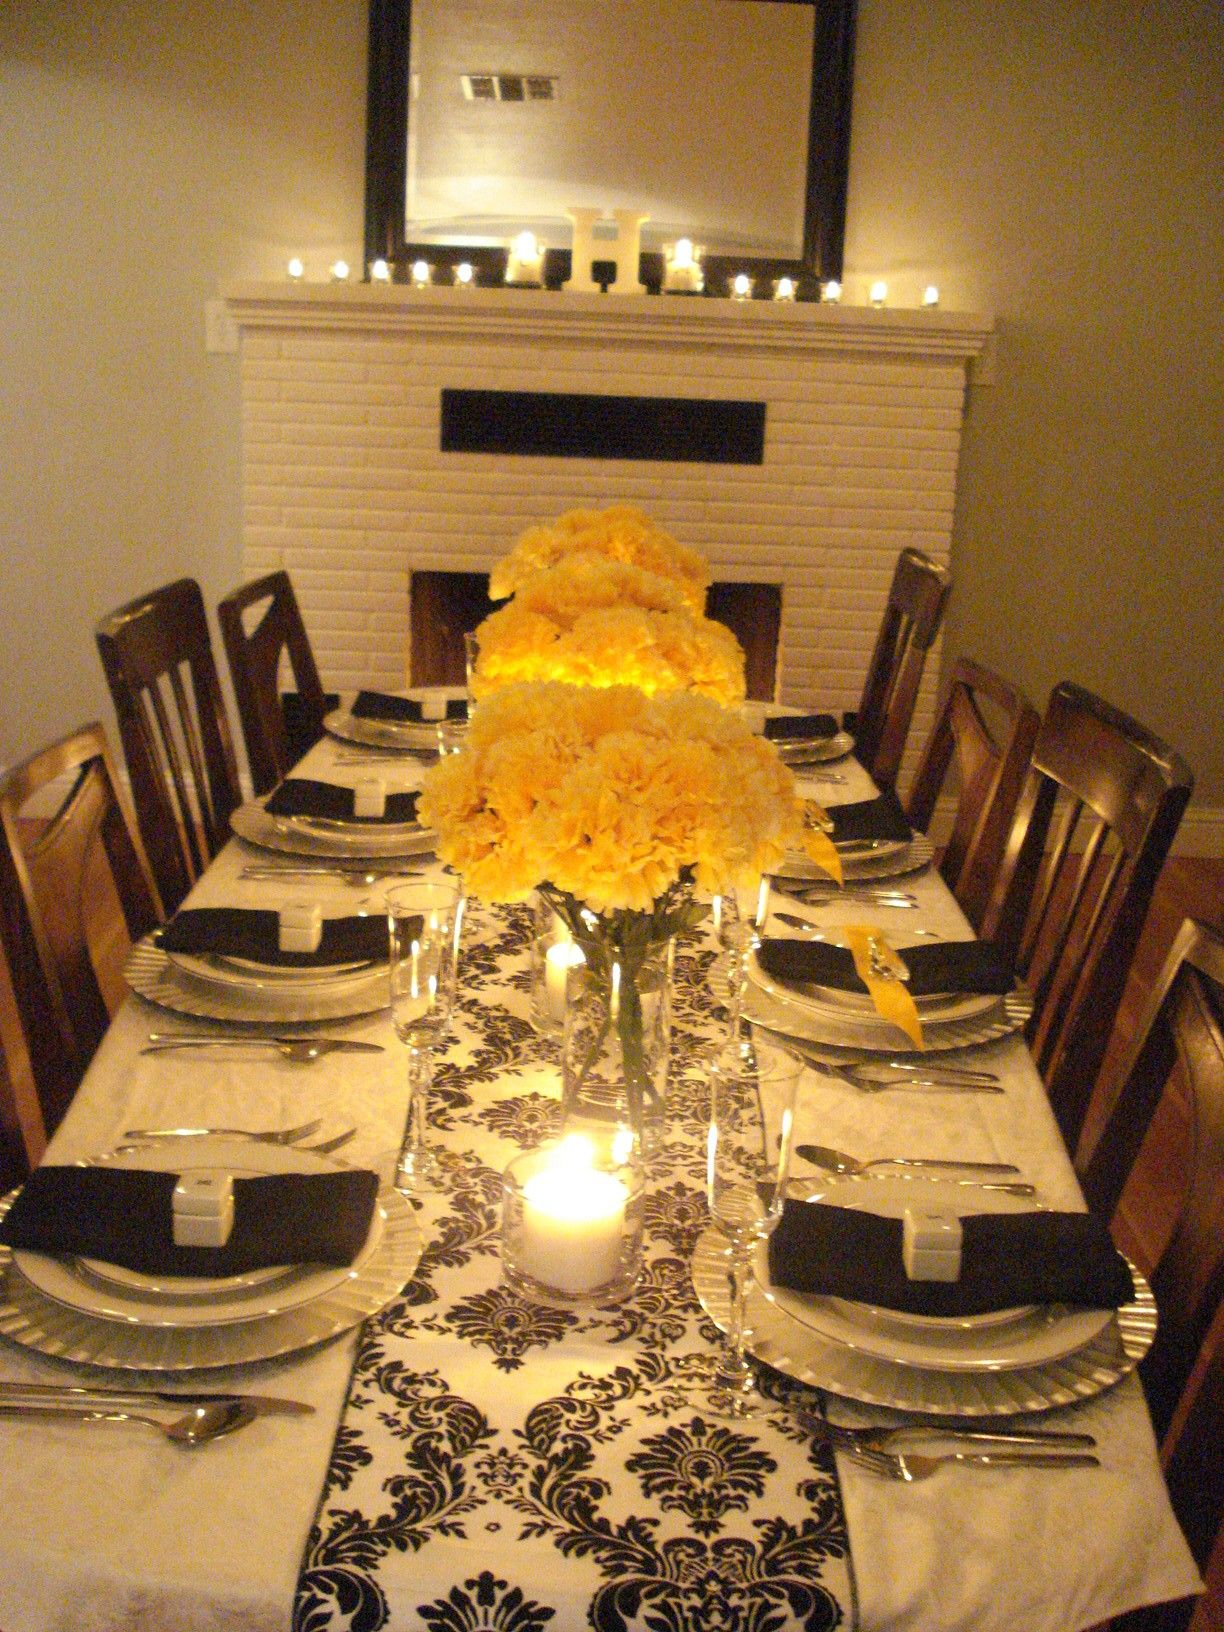 Room decoration ideas for anniversary - Black White And Yellow Anniversary Party